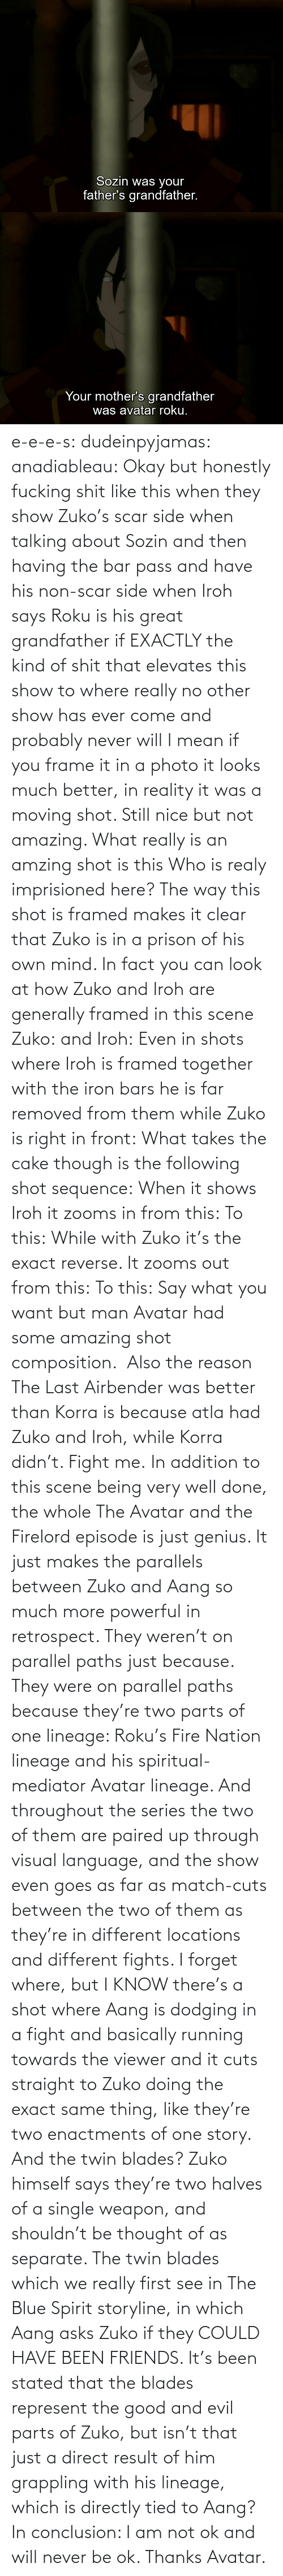 Cake: e-e-e-s: dudeinpyjamas:   anadiableau: Okay but honestly fucking shit like this when they show Zuko's scar side when talking about Sozin and then having the bar pass and have his non-scar side when Iroh says Roku is his great grandfather if EXACTLY the kind of shit that elevates this show to where really no other show has ever come and probably never will I mean if you frame it in a photo it looks much better, in reality it was a moving shot. Still nice but not amazing. What really is an amzing shot is this Who is realy imprisioned here? The way this shot is framed makes it clear that Zuko is in a prison of his own mind. In fact you can look at how Zuko and Iroh are generally framed in this scene Zuko: and Iroh: Even in shots where Iroh is framed together with the iron bars he is far removed from them while Zuko is right in front:  What takes the cake though is the following shot sequence: When it shows Iroh it zooms in from this: To this: While with Zuko it's the exact reverse. It zooms out from this: To this: Say what you want but man Avatar had some amazing shot composition.   Also the reason The Last Airbender was better than Korra is because atla had Zuko and Iroh, while Korra didn't. Fight me.    In addition to this scene being very well done, the whole The Avatar and the Firelord episode is just genius.  It just makes the parallels between Zuko and Aang so much more powerful in retrospect.  They weren't on parallel paths just because.  They were on parallel paths because they're two parts of one lineage: Roku's Fire Nation lineage and his spiritual-mediator Avatar lineage.  And throughout the series the two of them are paired up through visual language, and the show even goes as far as match-cuts between the two of them as they're in different locations and different fights.  I forget where, but I KNOW there's a shot where Aang is dodging in a fight and basically running towards the viewer and it cuts straight to Zuko doing the exact same thing, like they're two enactments of one story.   And the twin blades?  Zuko himself says they're two halves of a single weapon, and shouldn't be thought of as separate.  The twin blades which we really first see in The Blue Spirit storyline, in which Aang asks Zuko if they COULD HAVE BEEN FRIENDS.  It's been stated that the blades represent the good and evil parts of Zuko, but isn't that just a direct result of him grappling with his lineage, which is directly tied to Aang? In conclusion: I am not ok and will never be ok.  Thanks Avatar.